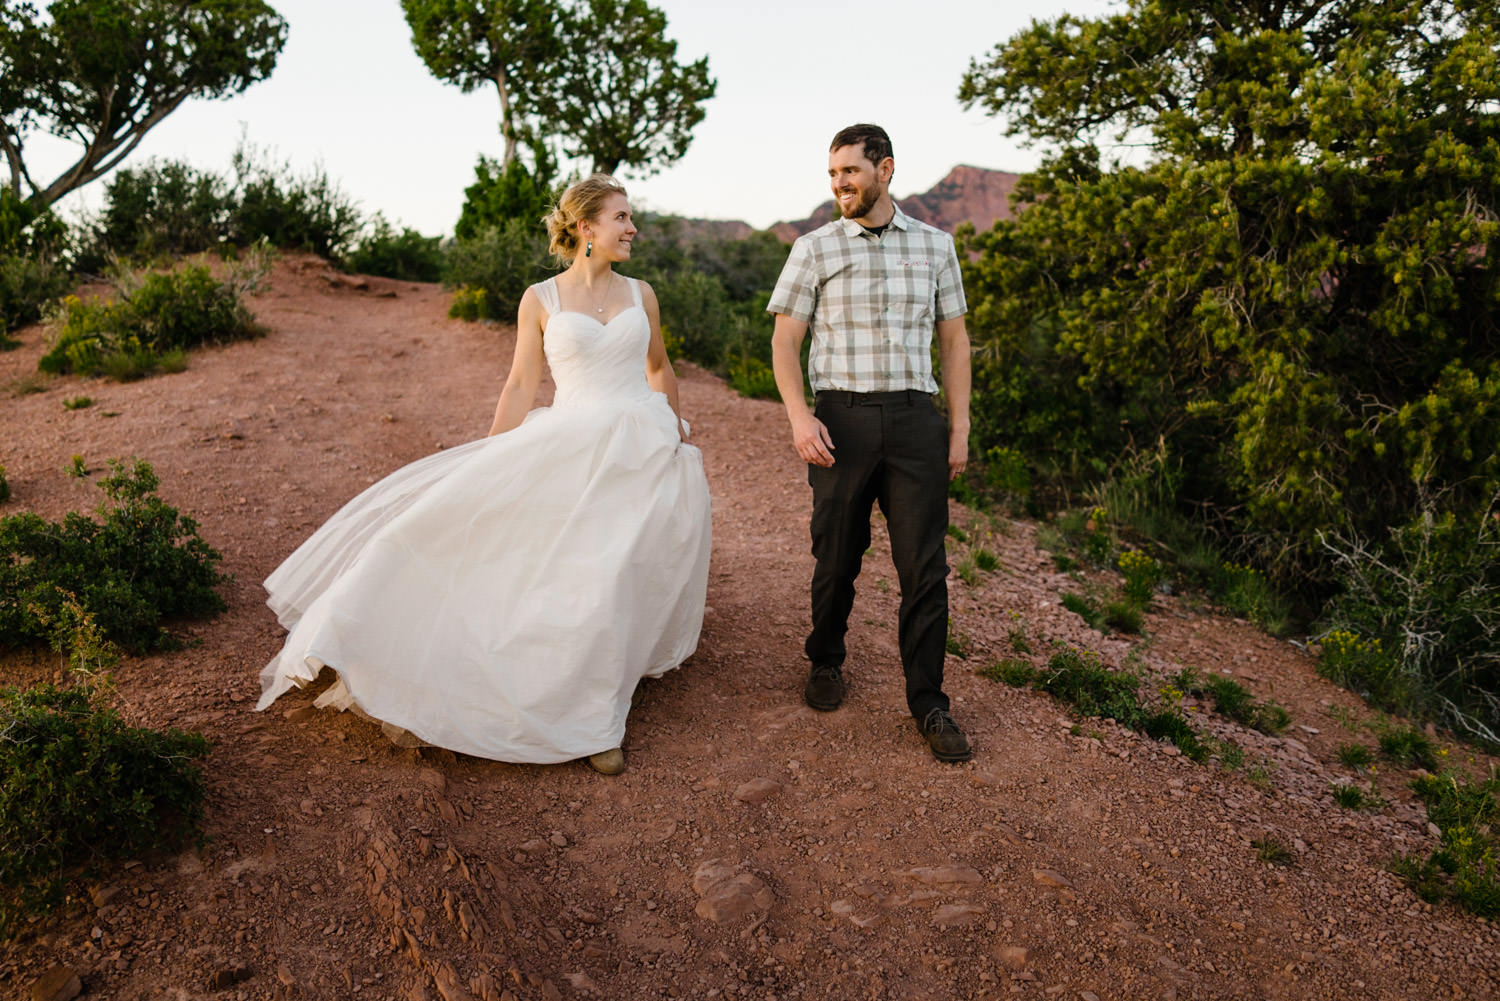 Kolob Canyons Wedding in Zion National Park newlyweds smiling photo